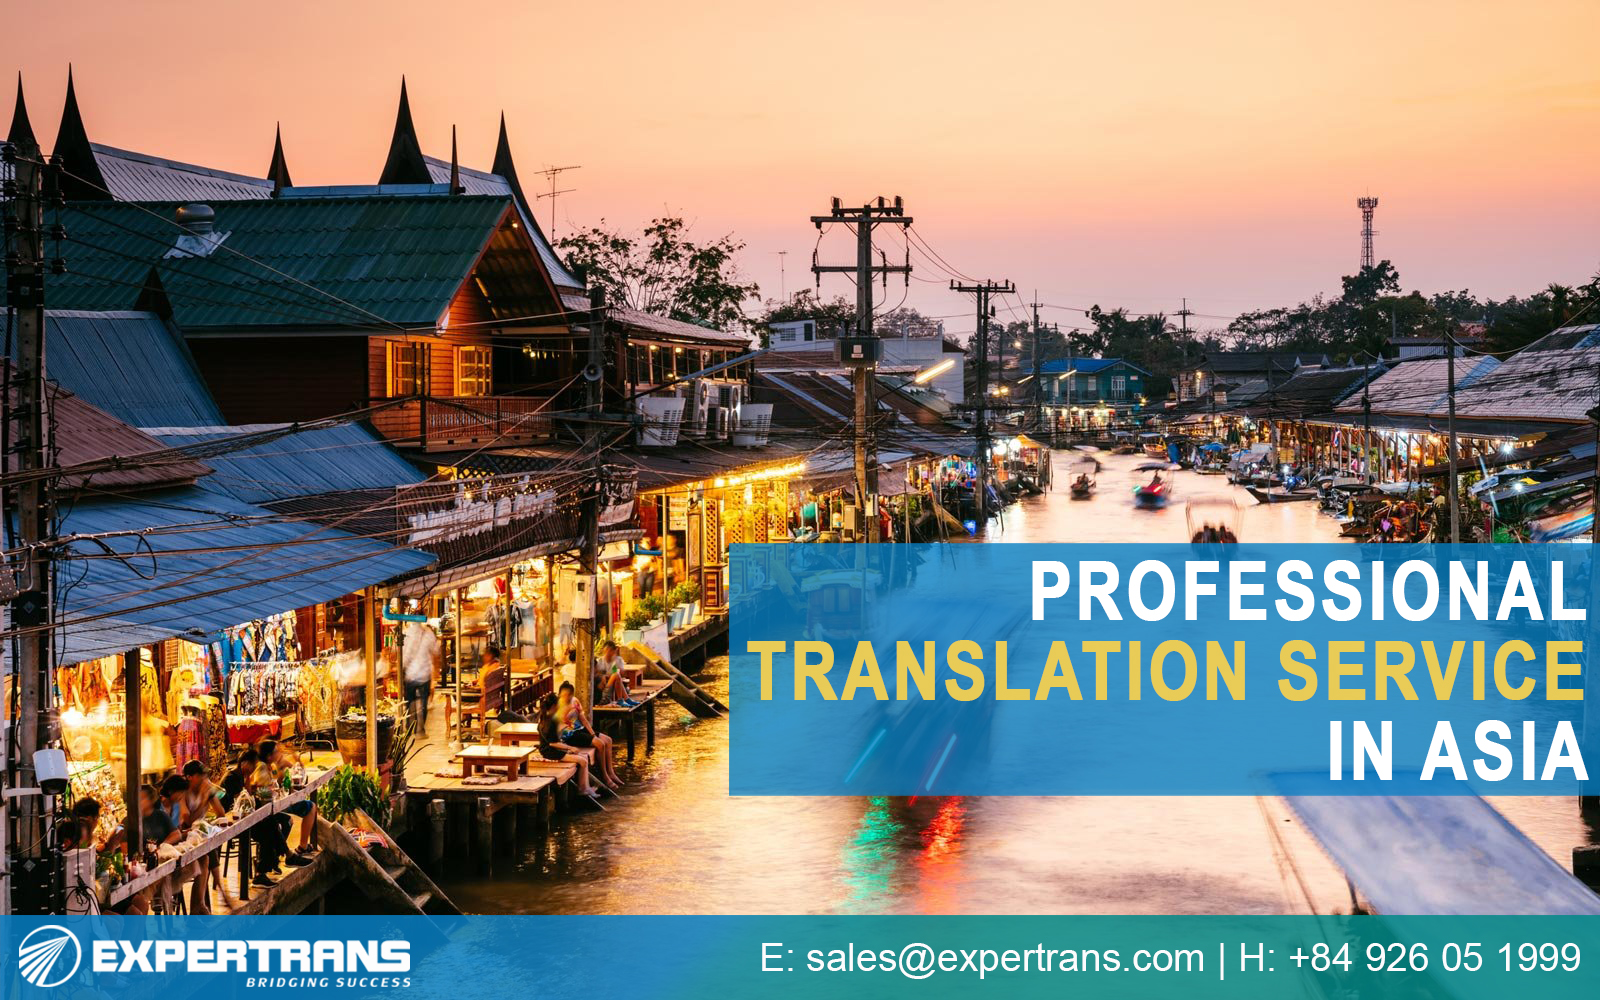 Professional Translation Service in Asia